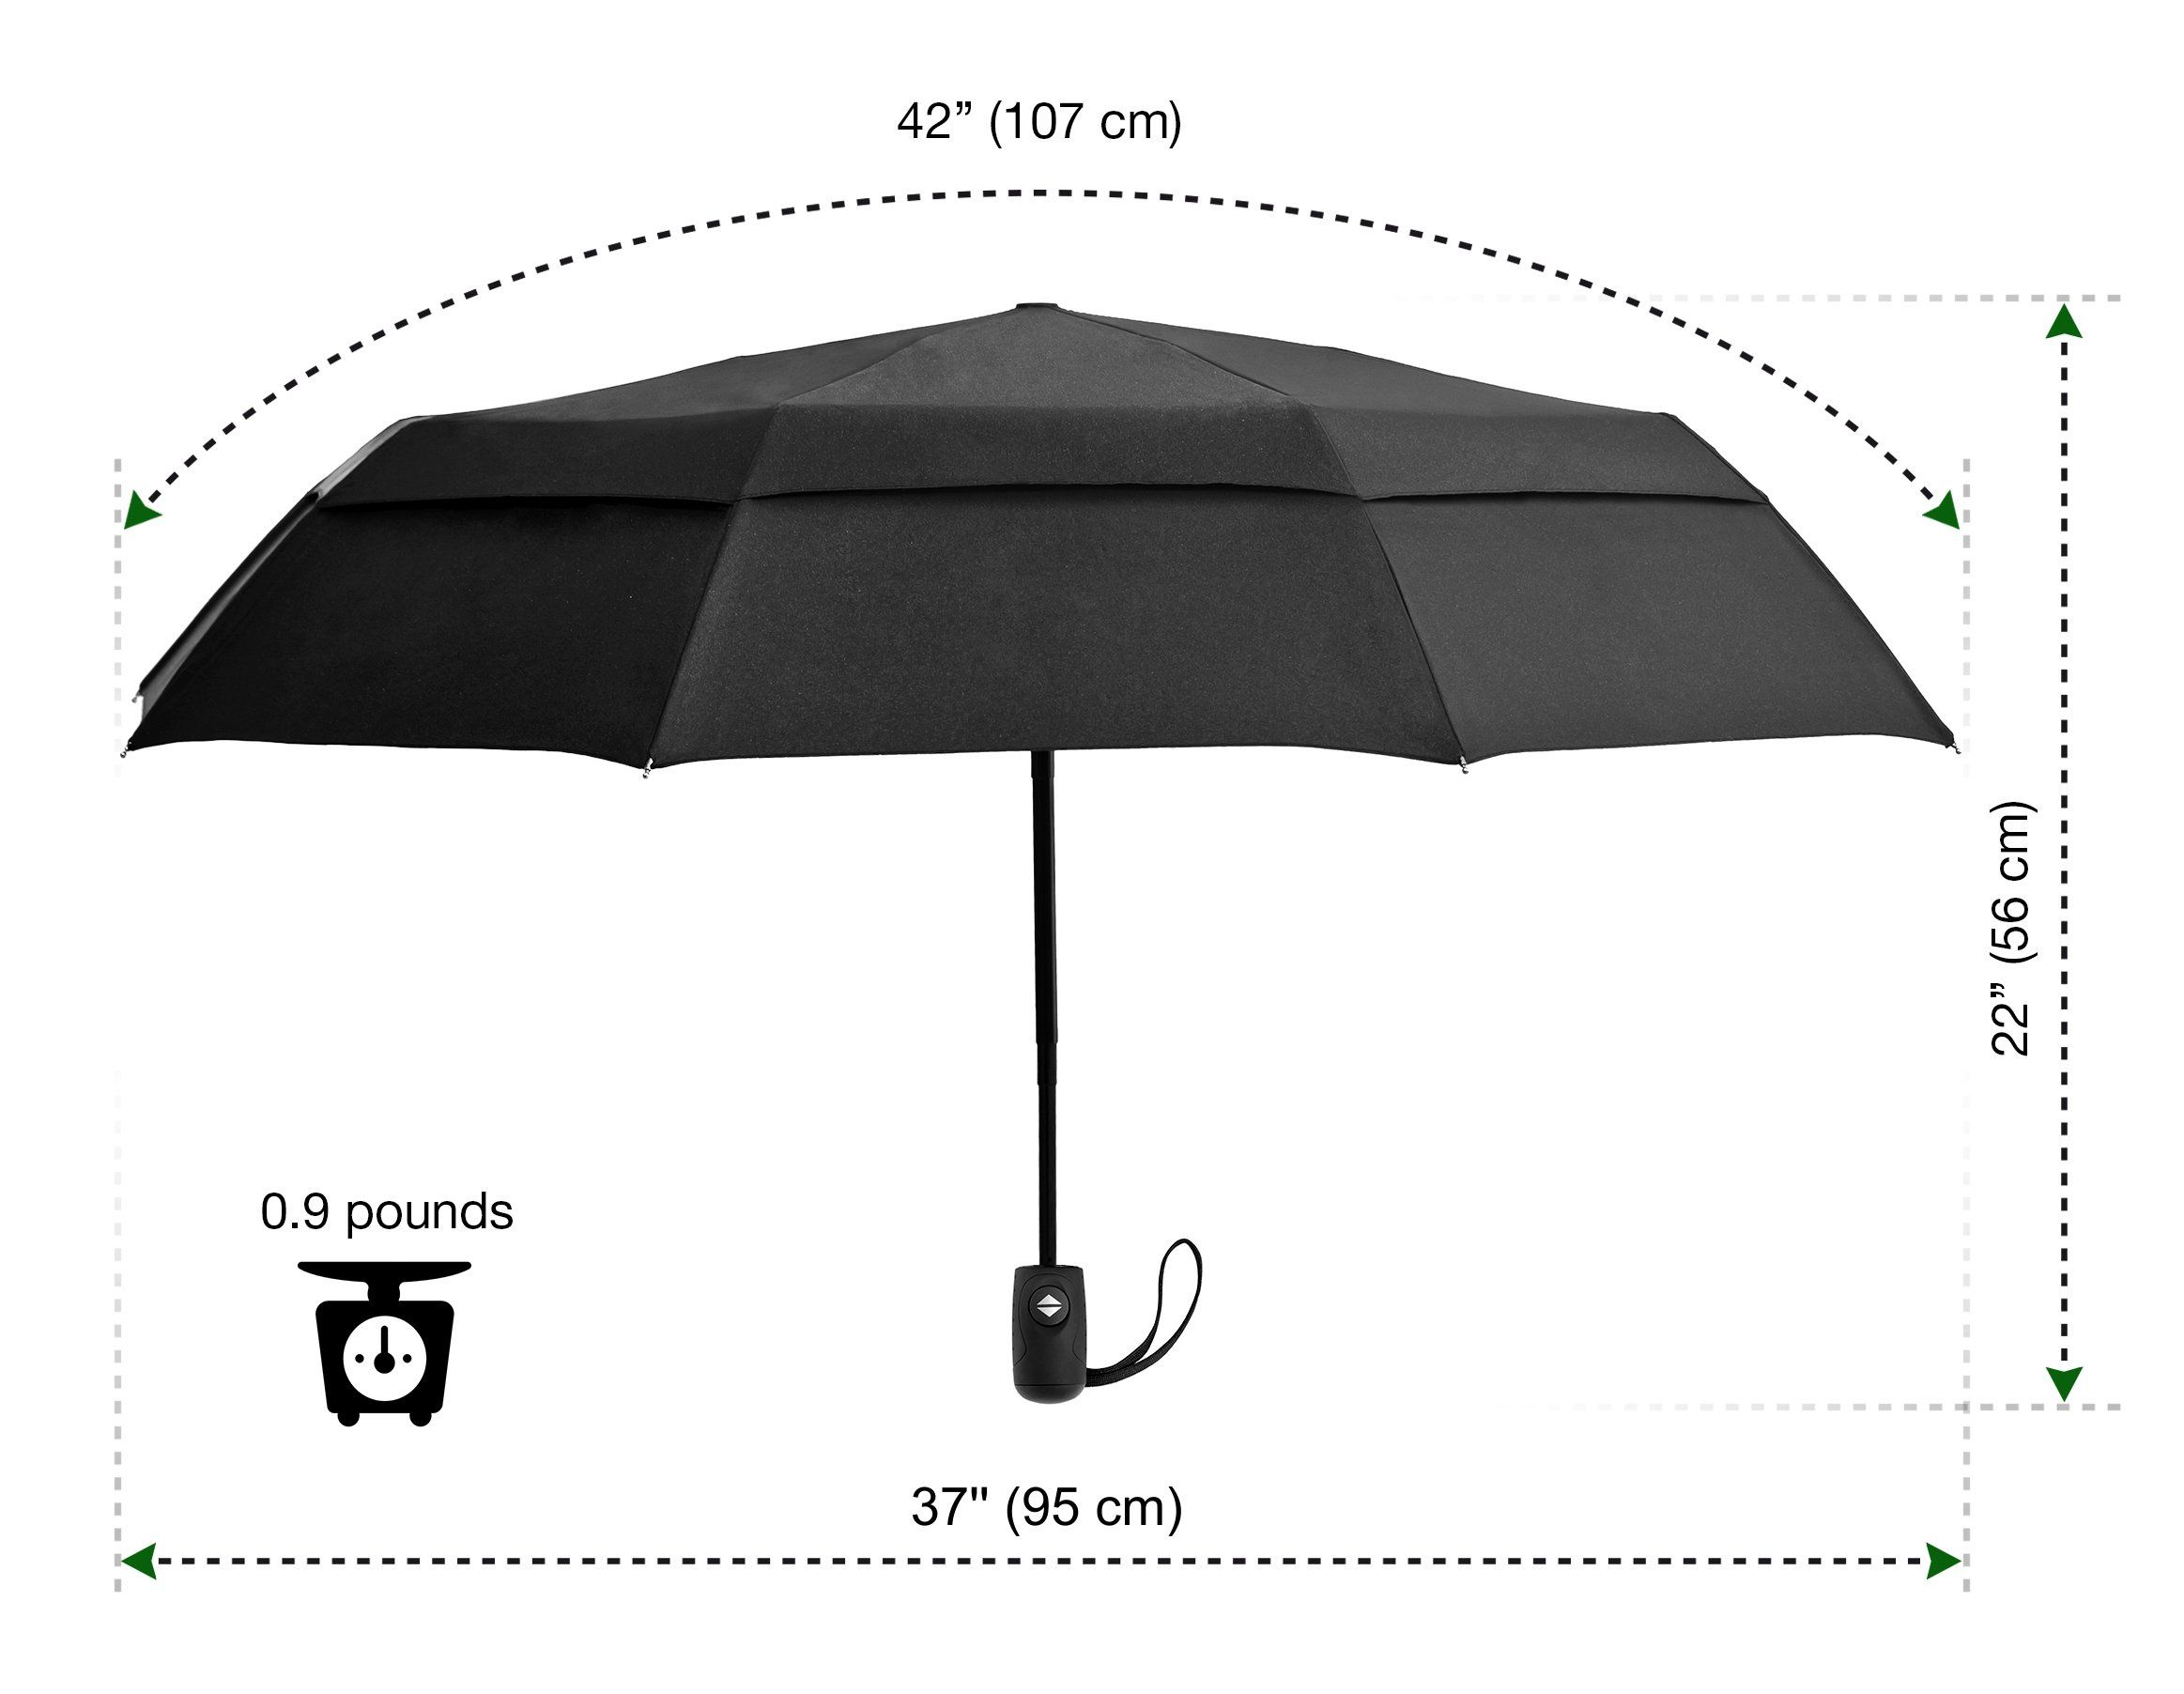 Auto Open//Close Button Great Shark Blue Compact Travel Umbrella with Windproof Double Canopy Construction